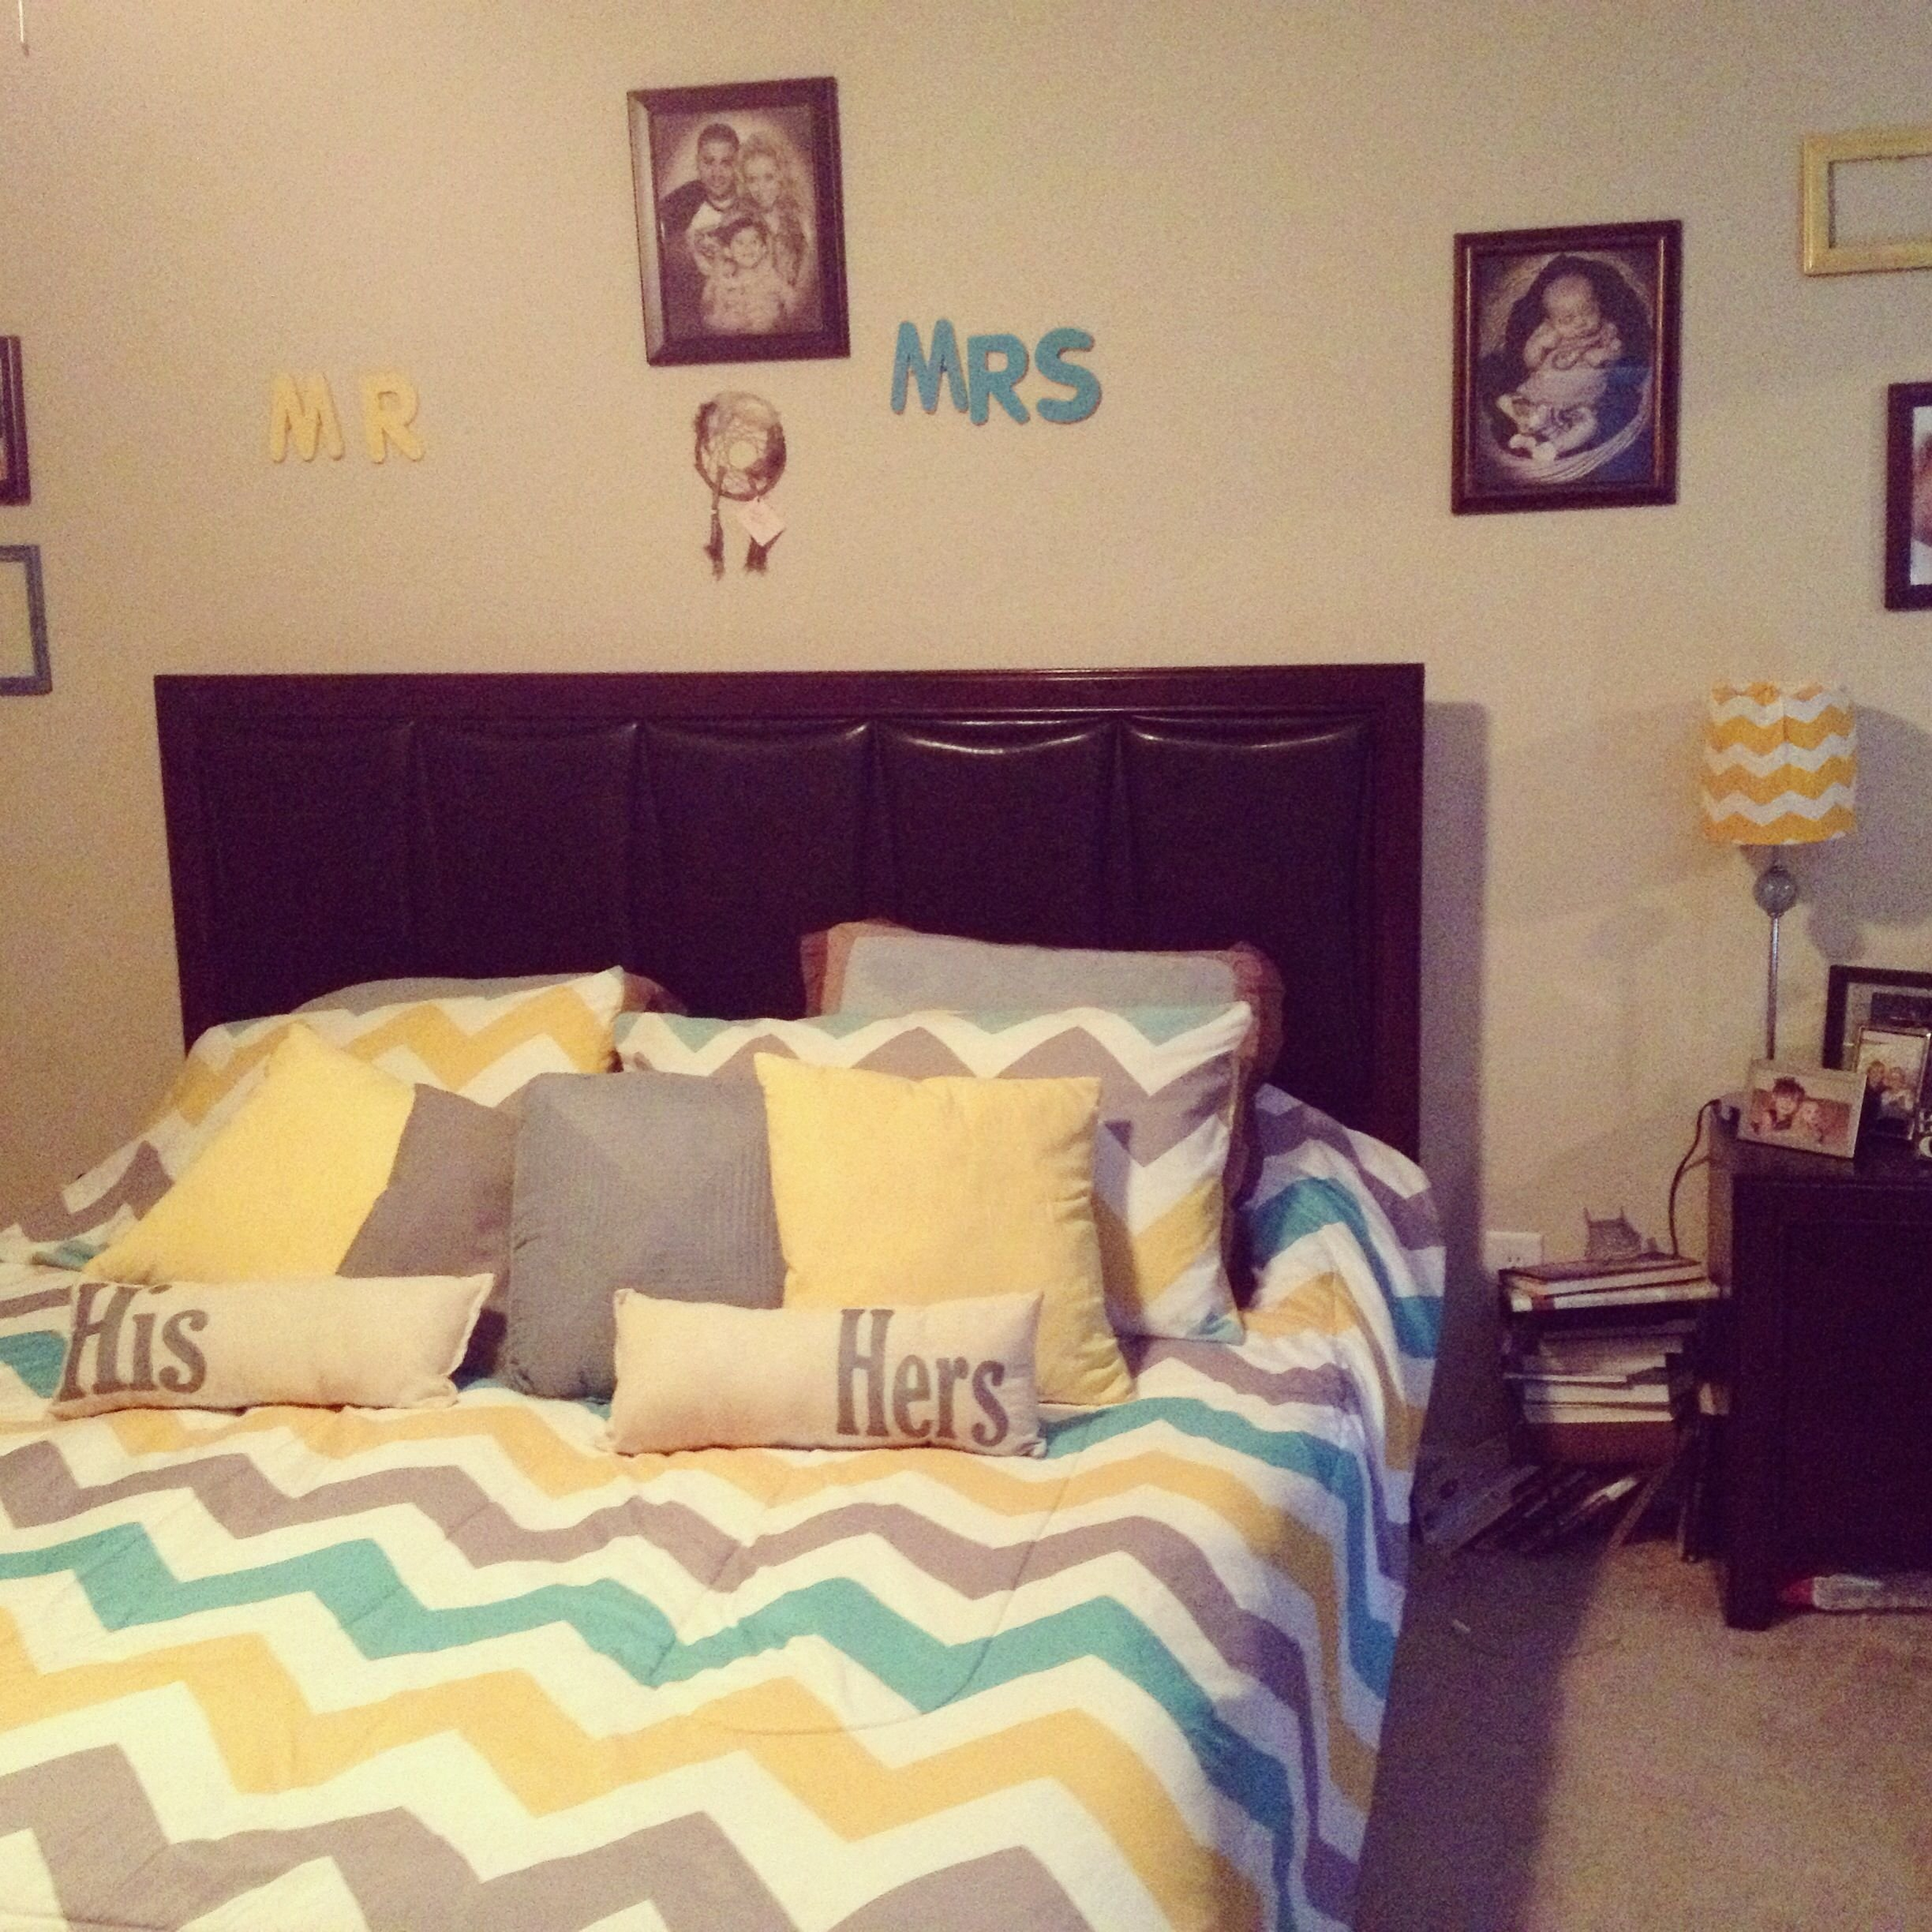 10 Attractive Yellow And Gray Bedroom Ideas yellow gray teal chevron bedroom flores house new house 2020